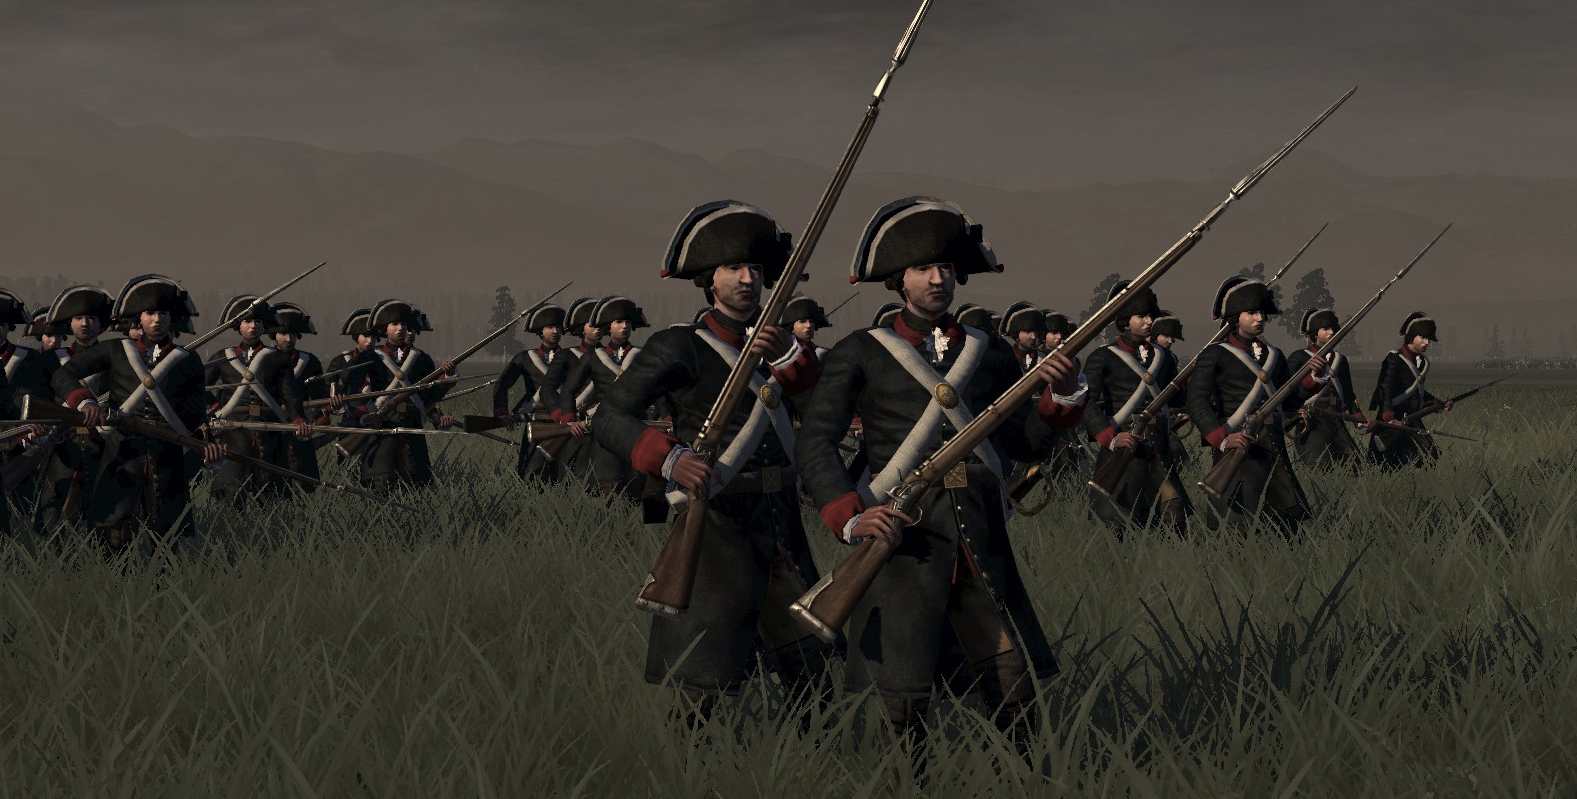 empire total war british units images galleries with a bite. Black Bedroom Furniture Sets. Home Design Ideas